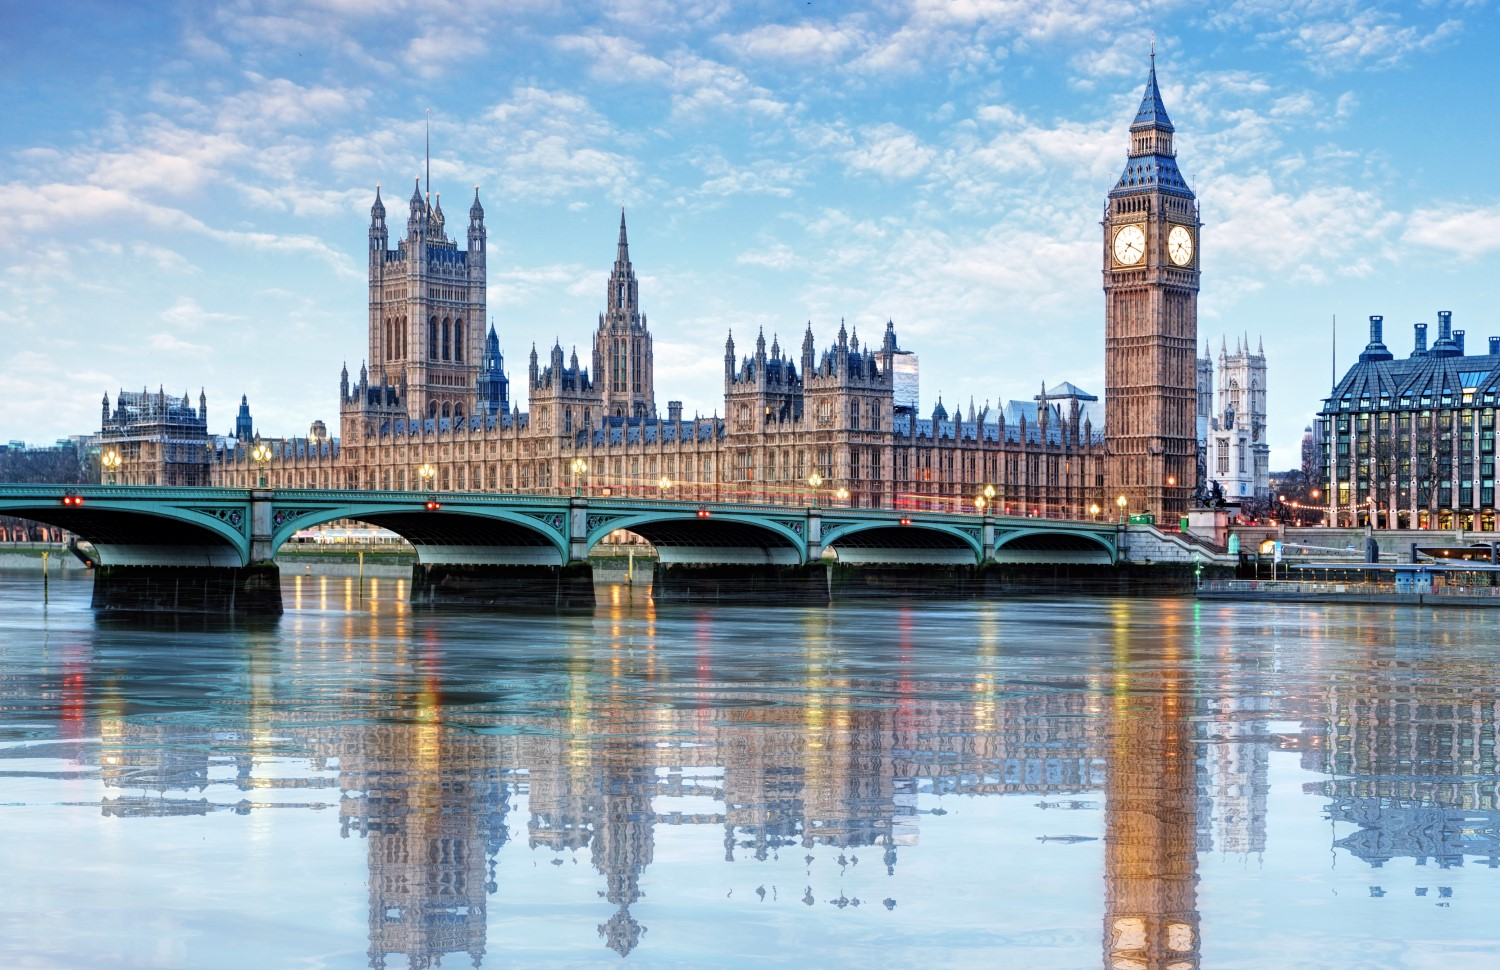 UK Parliament Presented Showcase of Real-World Blockchain Applications - CoinDesk